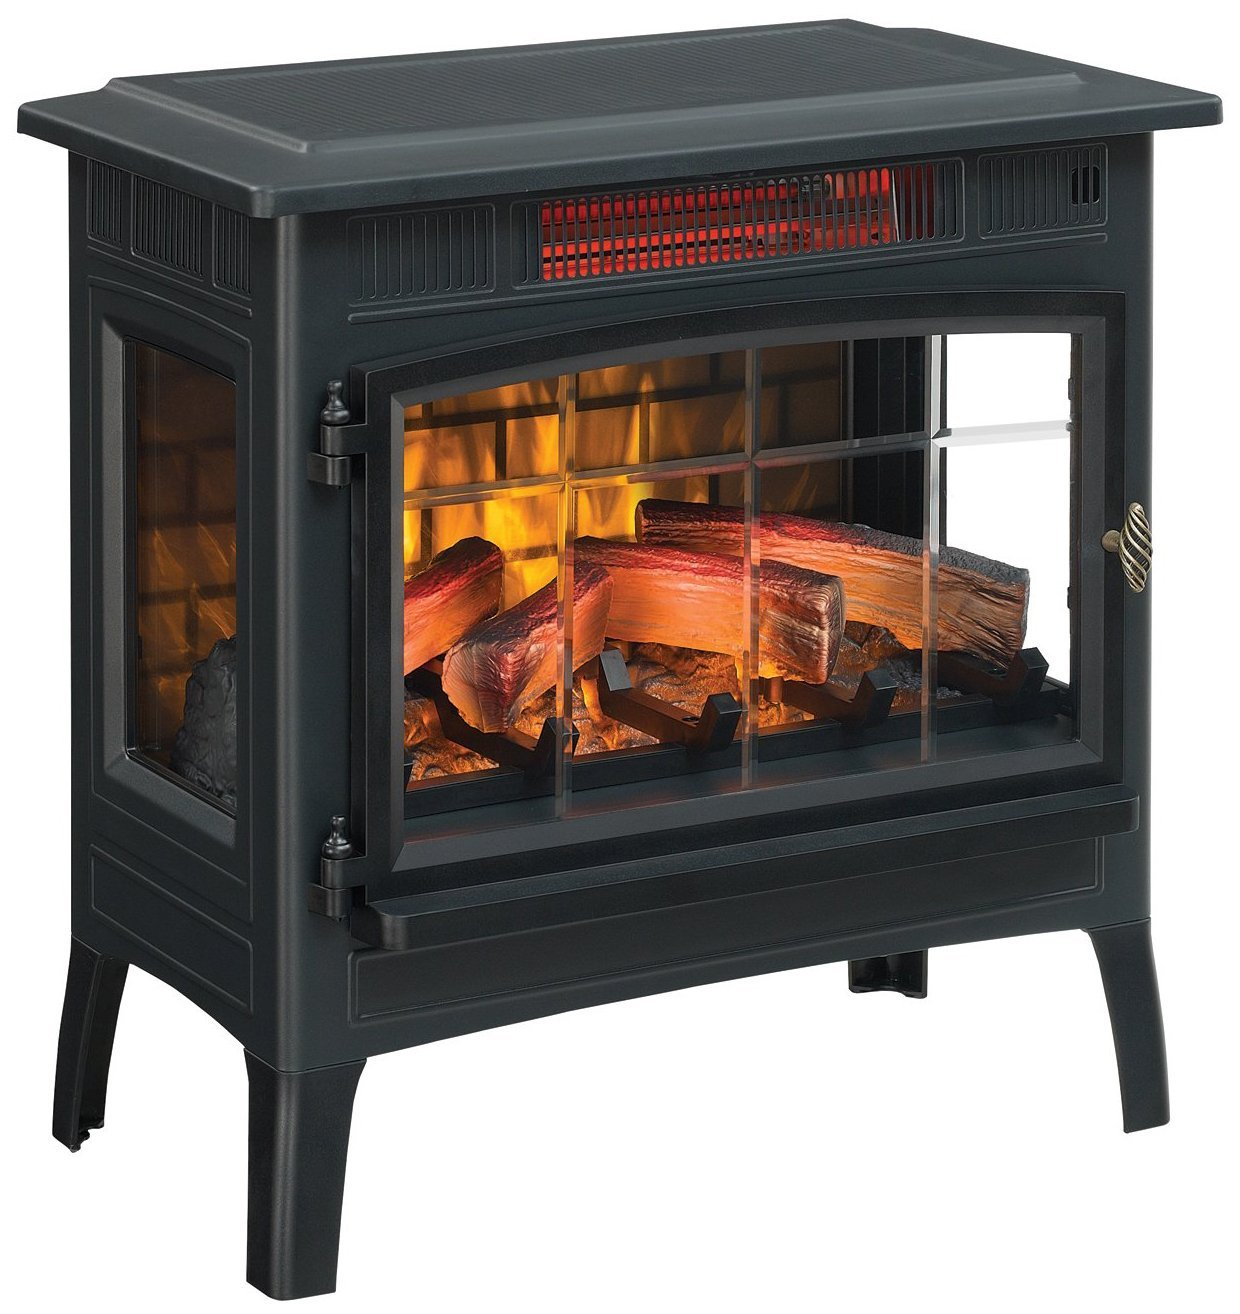 $150 - Duraflame Electric Infrared Quartz Fireplace | Anyone who has been in my home knows that I am a sucker for an electric fireplace… Wherever I am there they will be also. This is the one we keep in our bedroom.